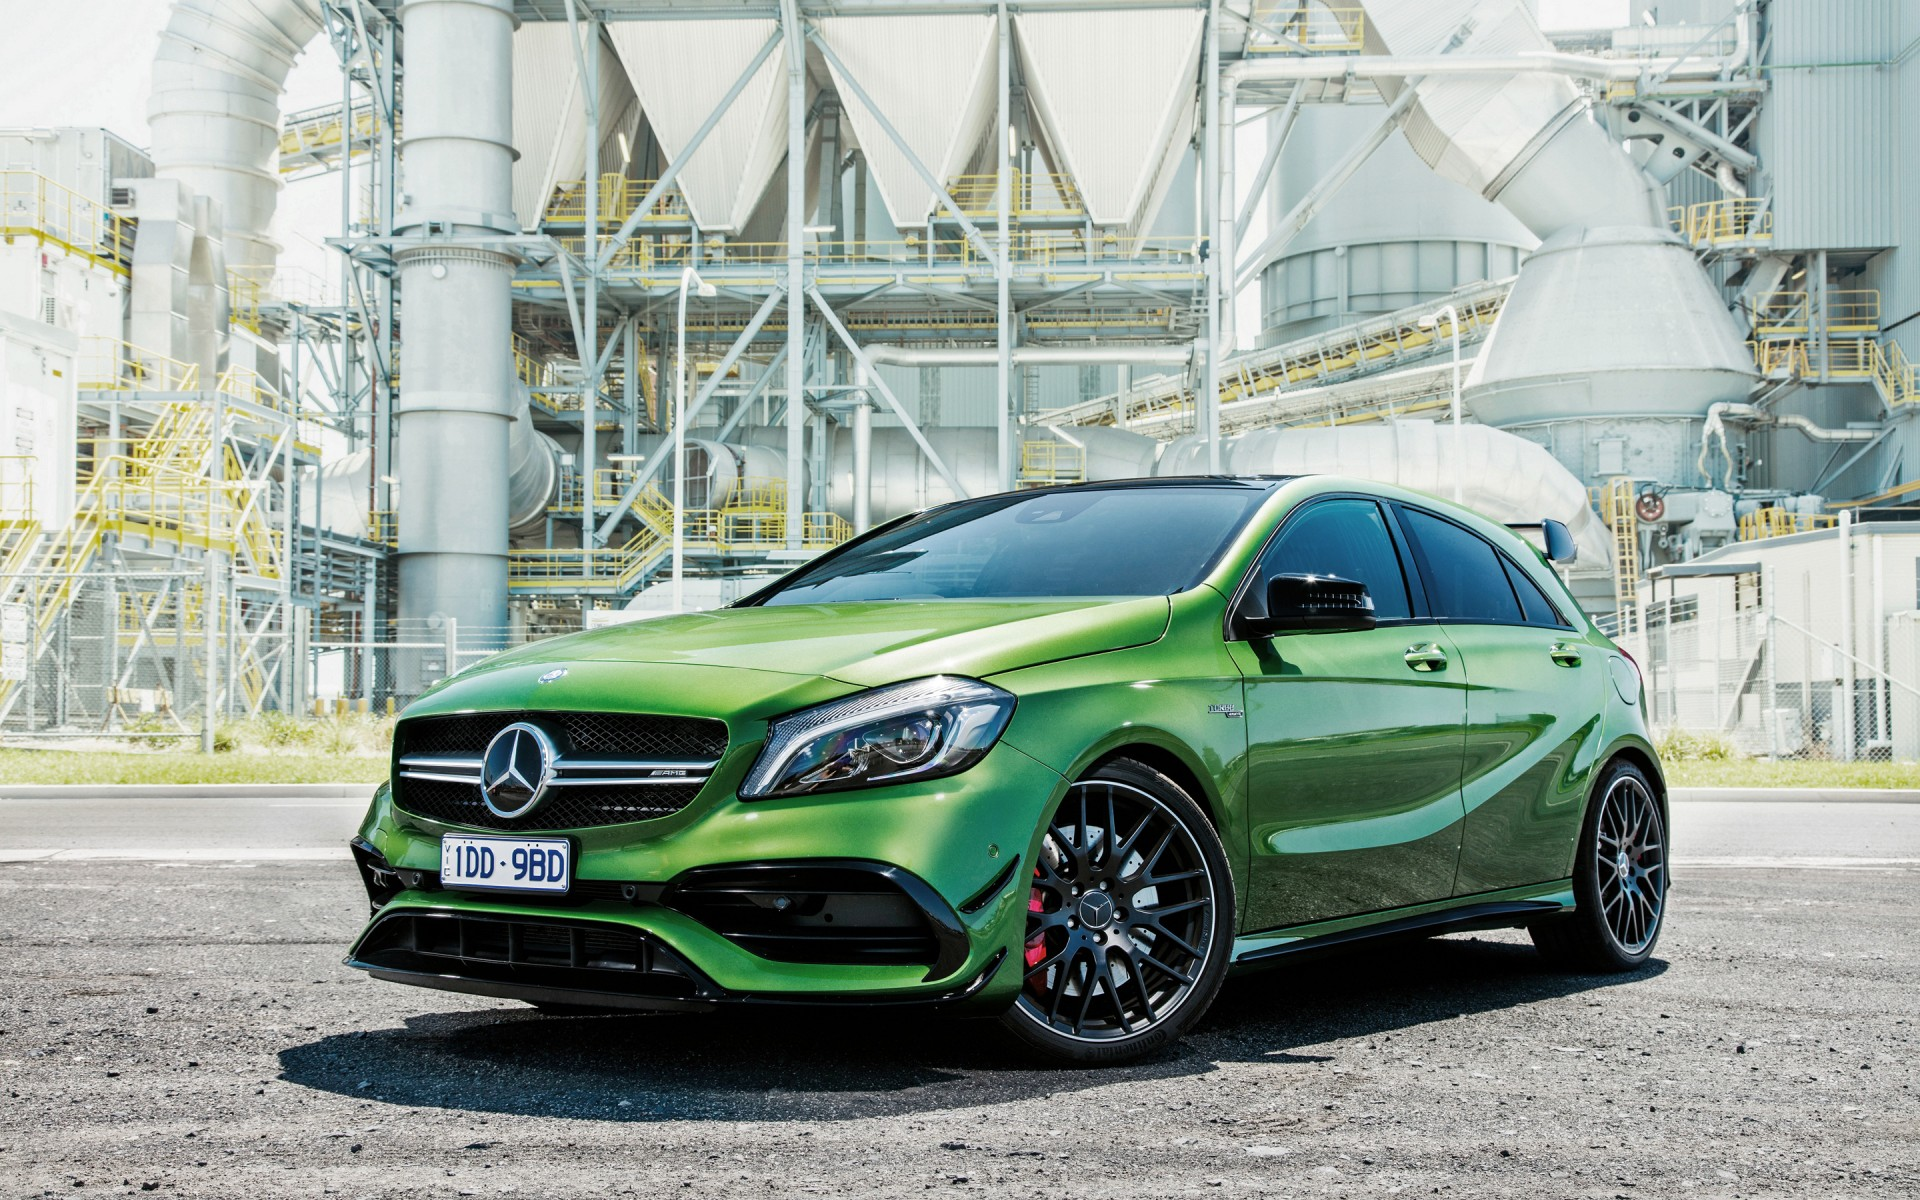 2016 mercedes benz a class a45 amg 4matic wallpaper hd car wallpapers. Black Bedroom Furniture Sets. Home Design Ideas